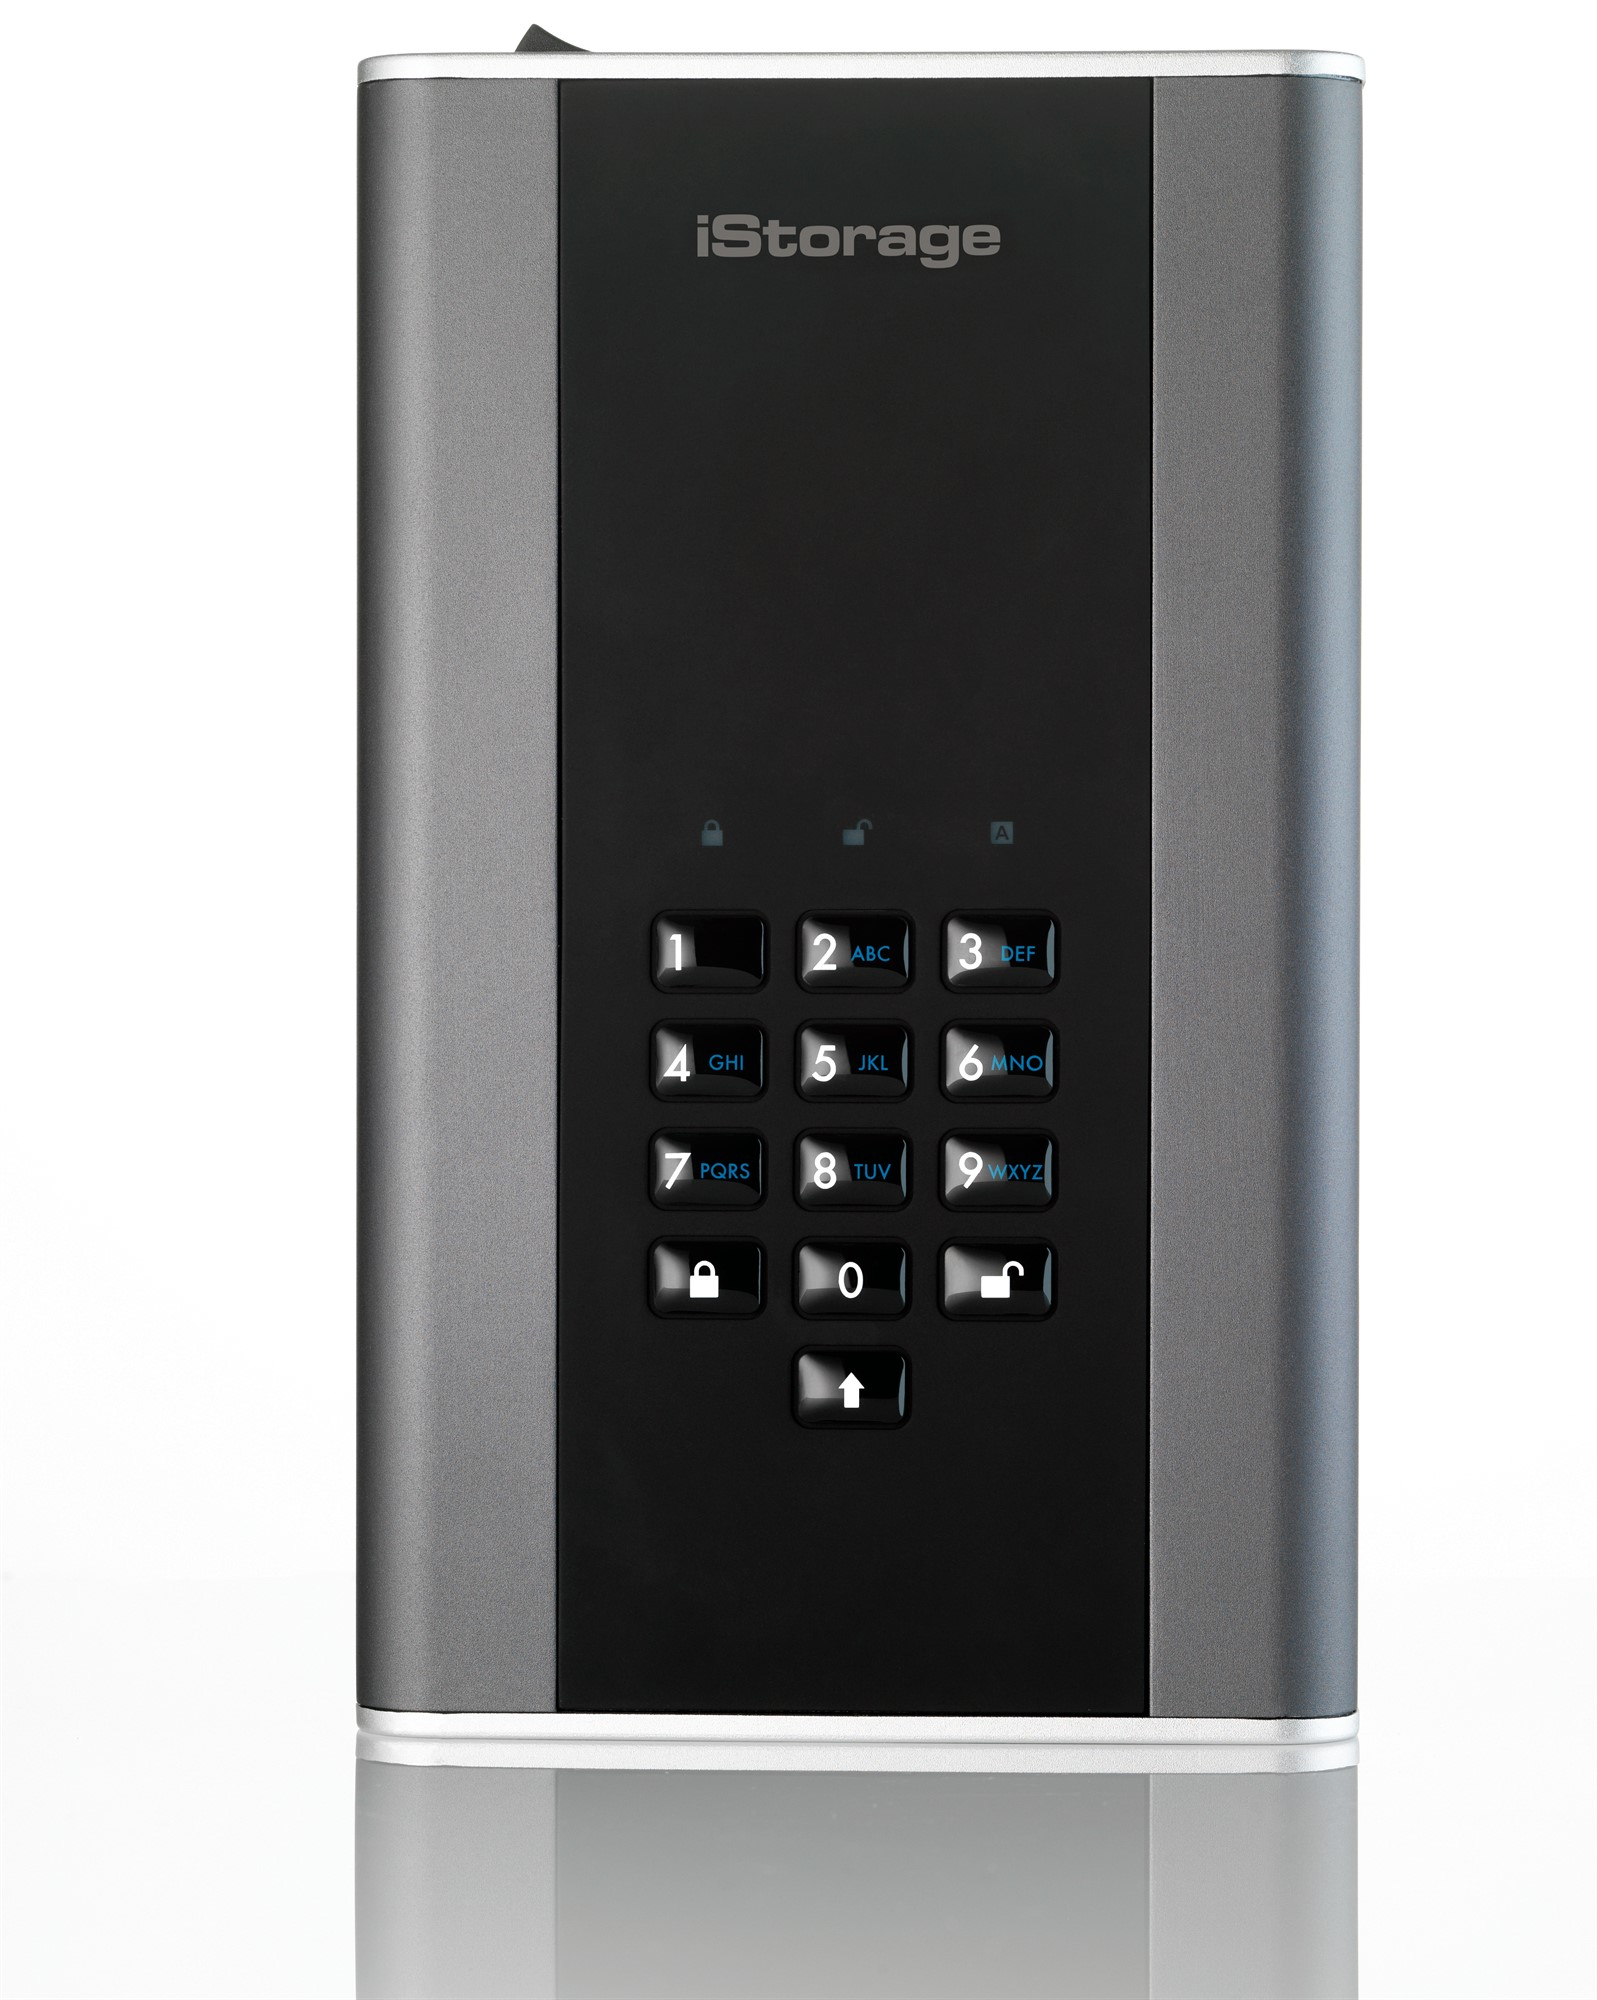 ISTORAGE IS-DT2-256-8000-C-G DISKASHUR DT 2 8000GB BLACK, GRAPHITE EXTERNAL HARD DRIVE